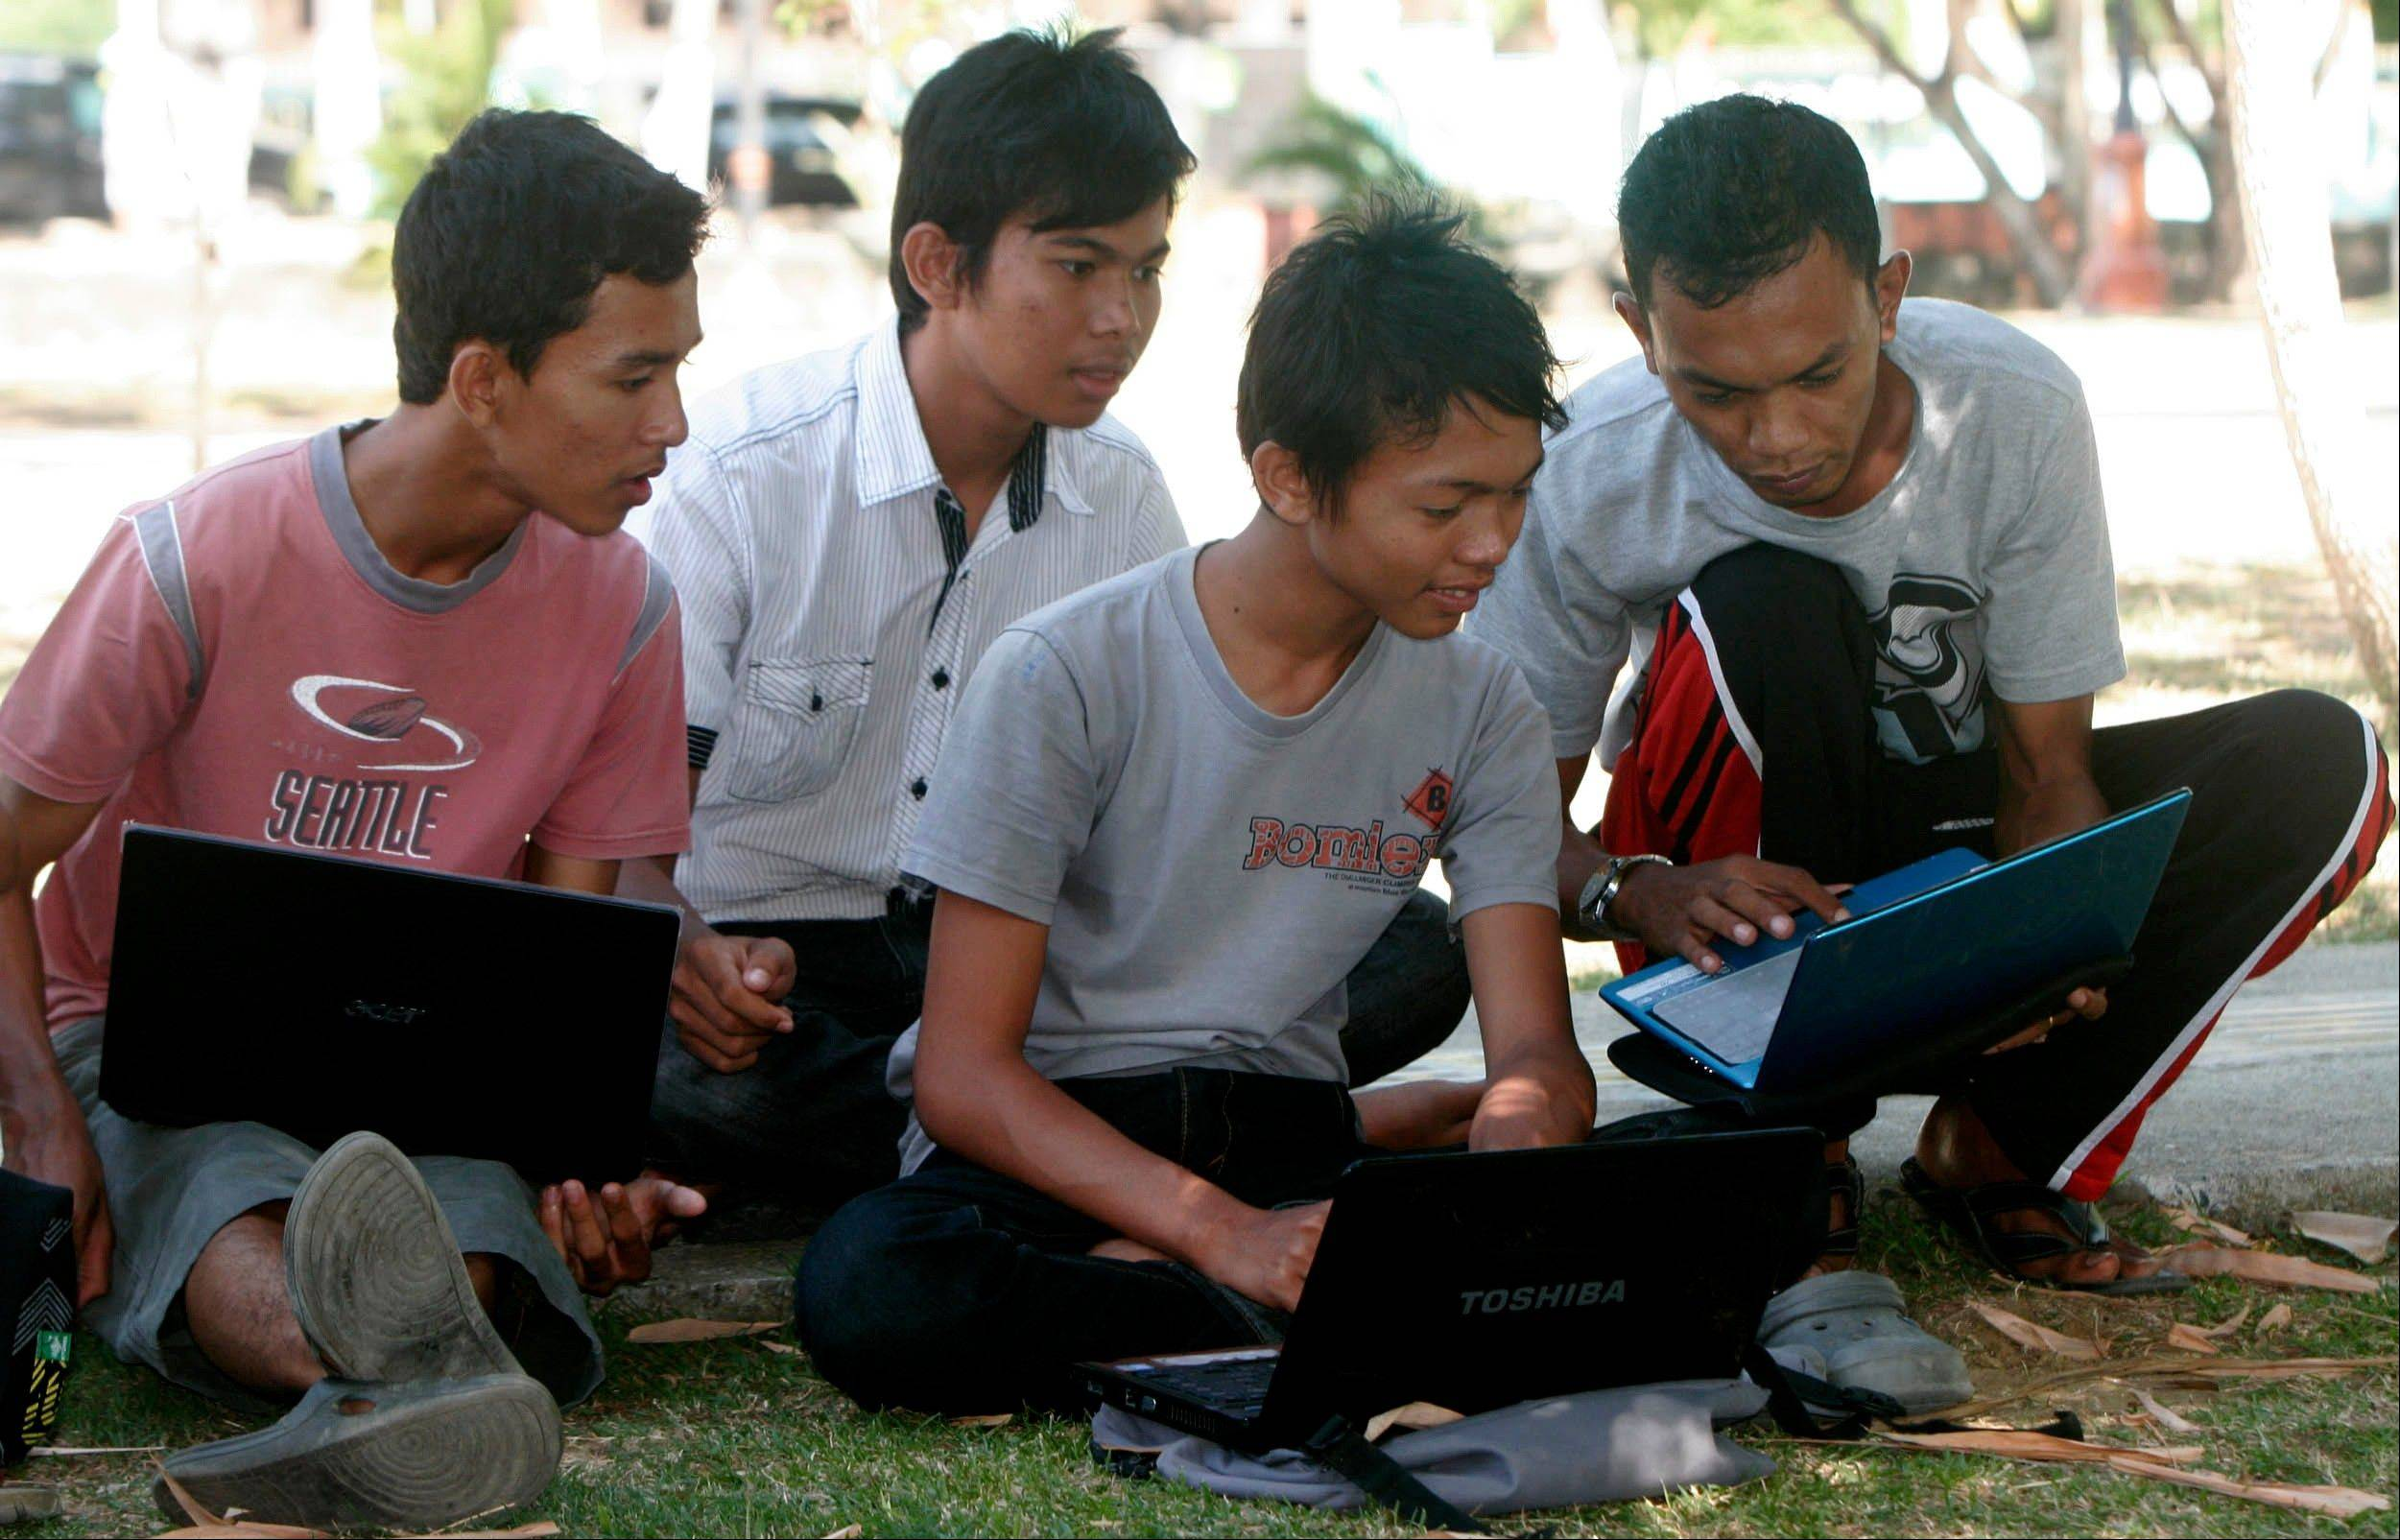 Young people browse Internet using free Wi-Fi access at a park in Indonesia.